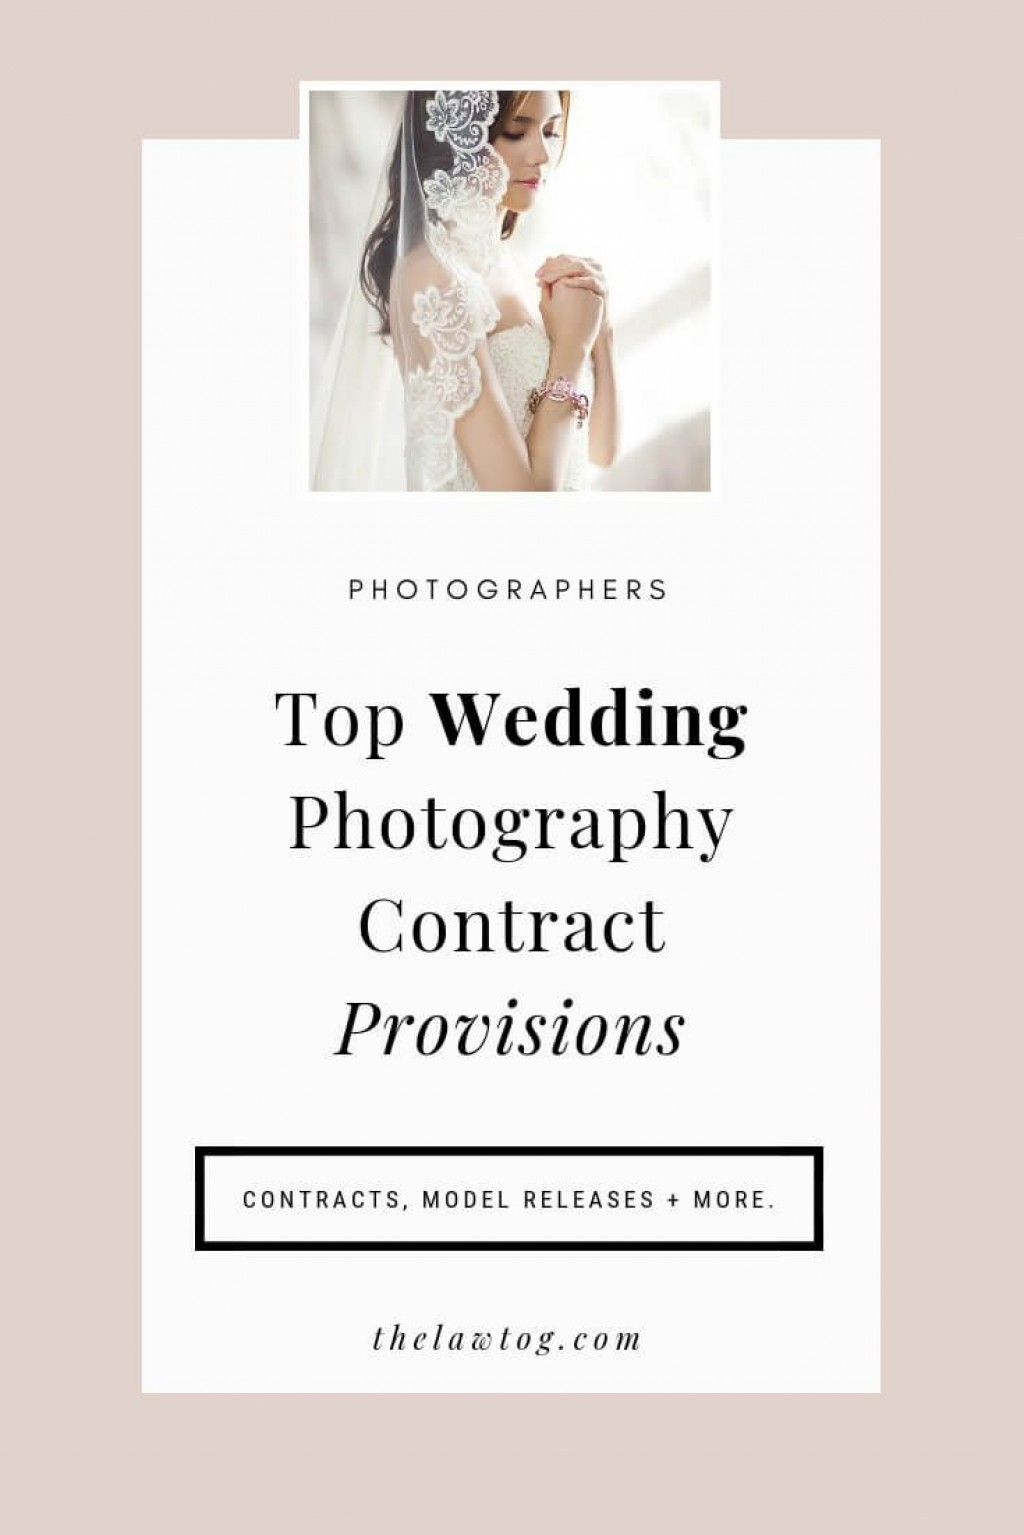 007 Frightening Wedding Photography Contract Template Canada Highest Clarity Large